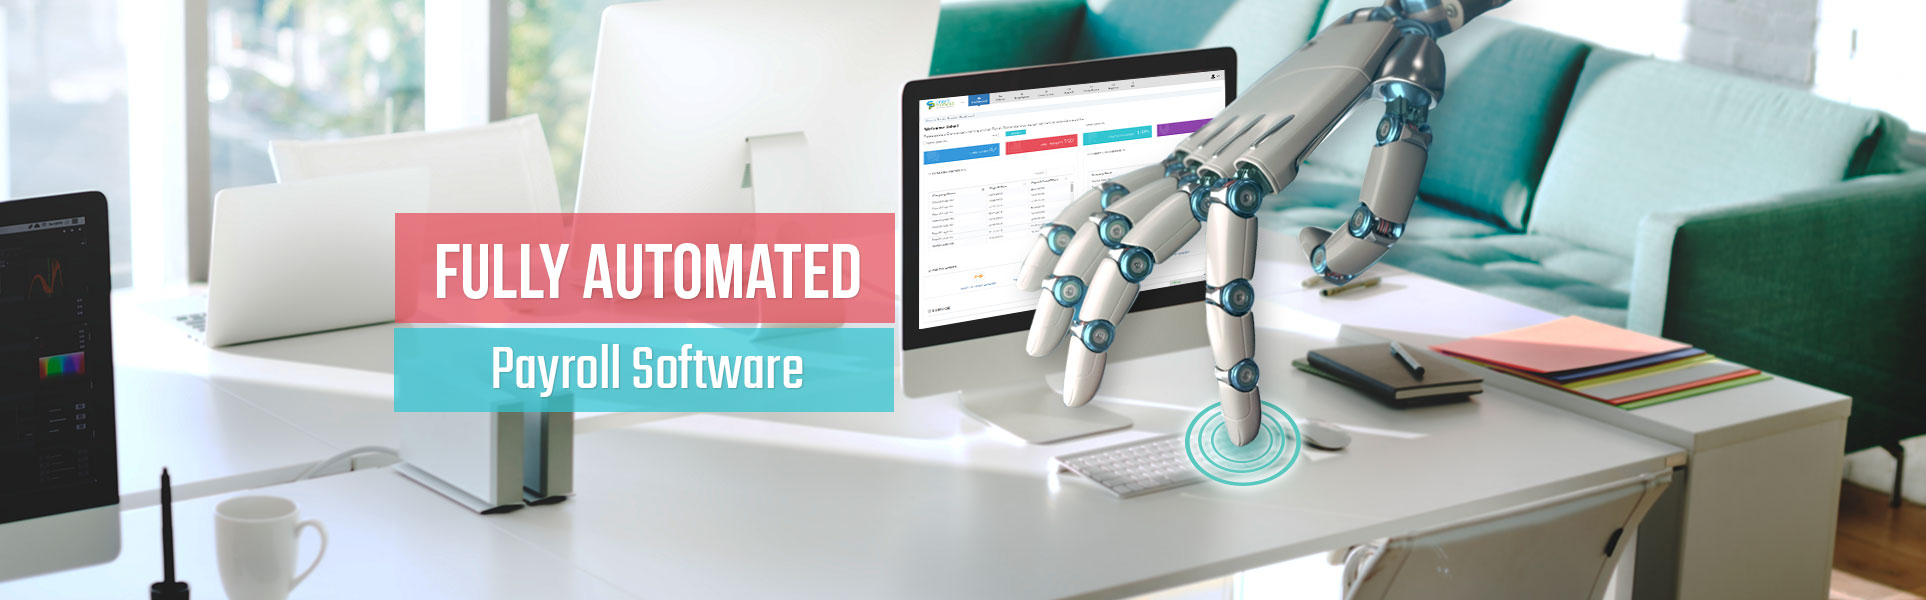 Fully automated payroll software